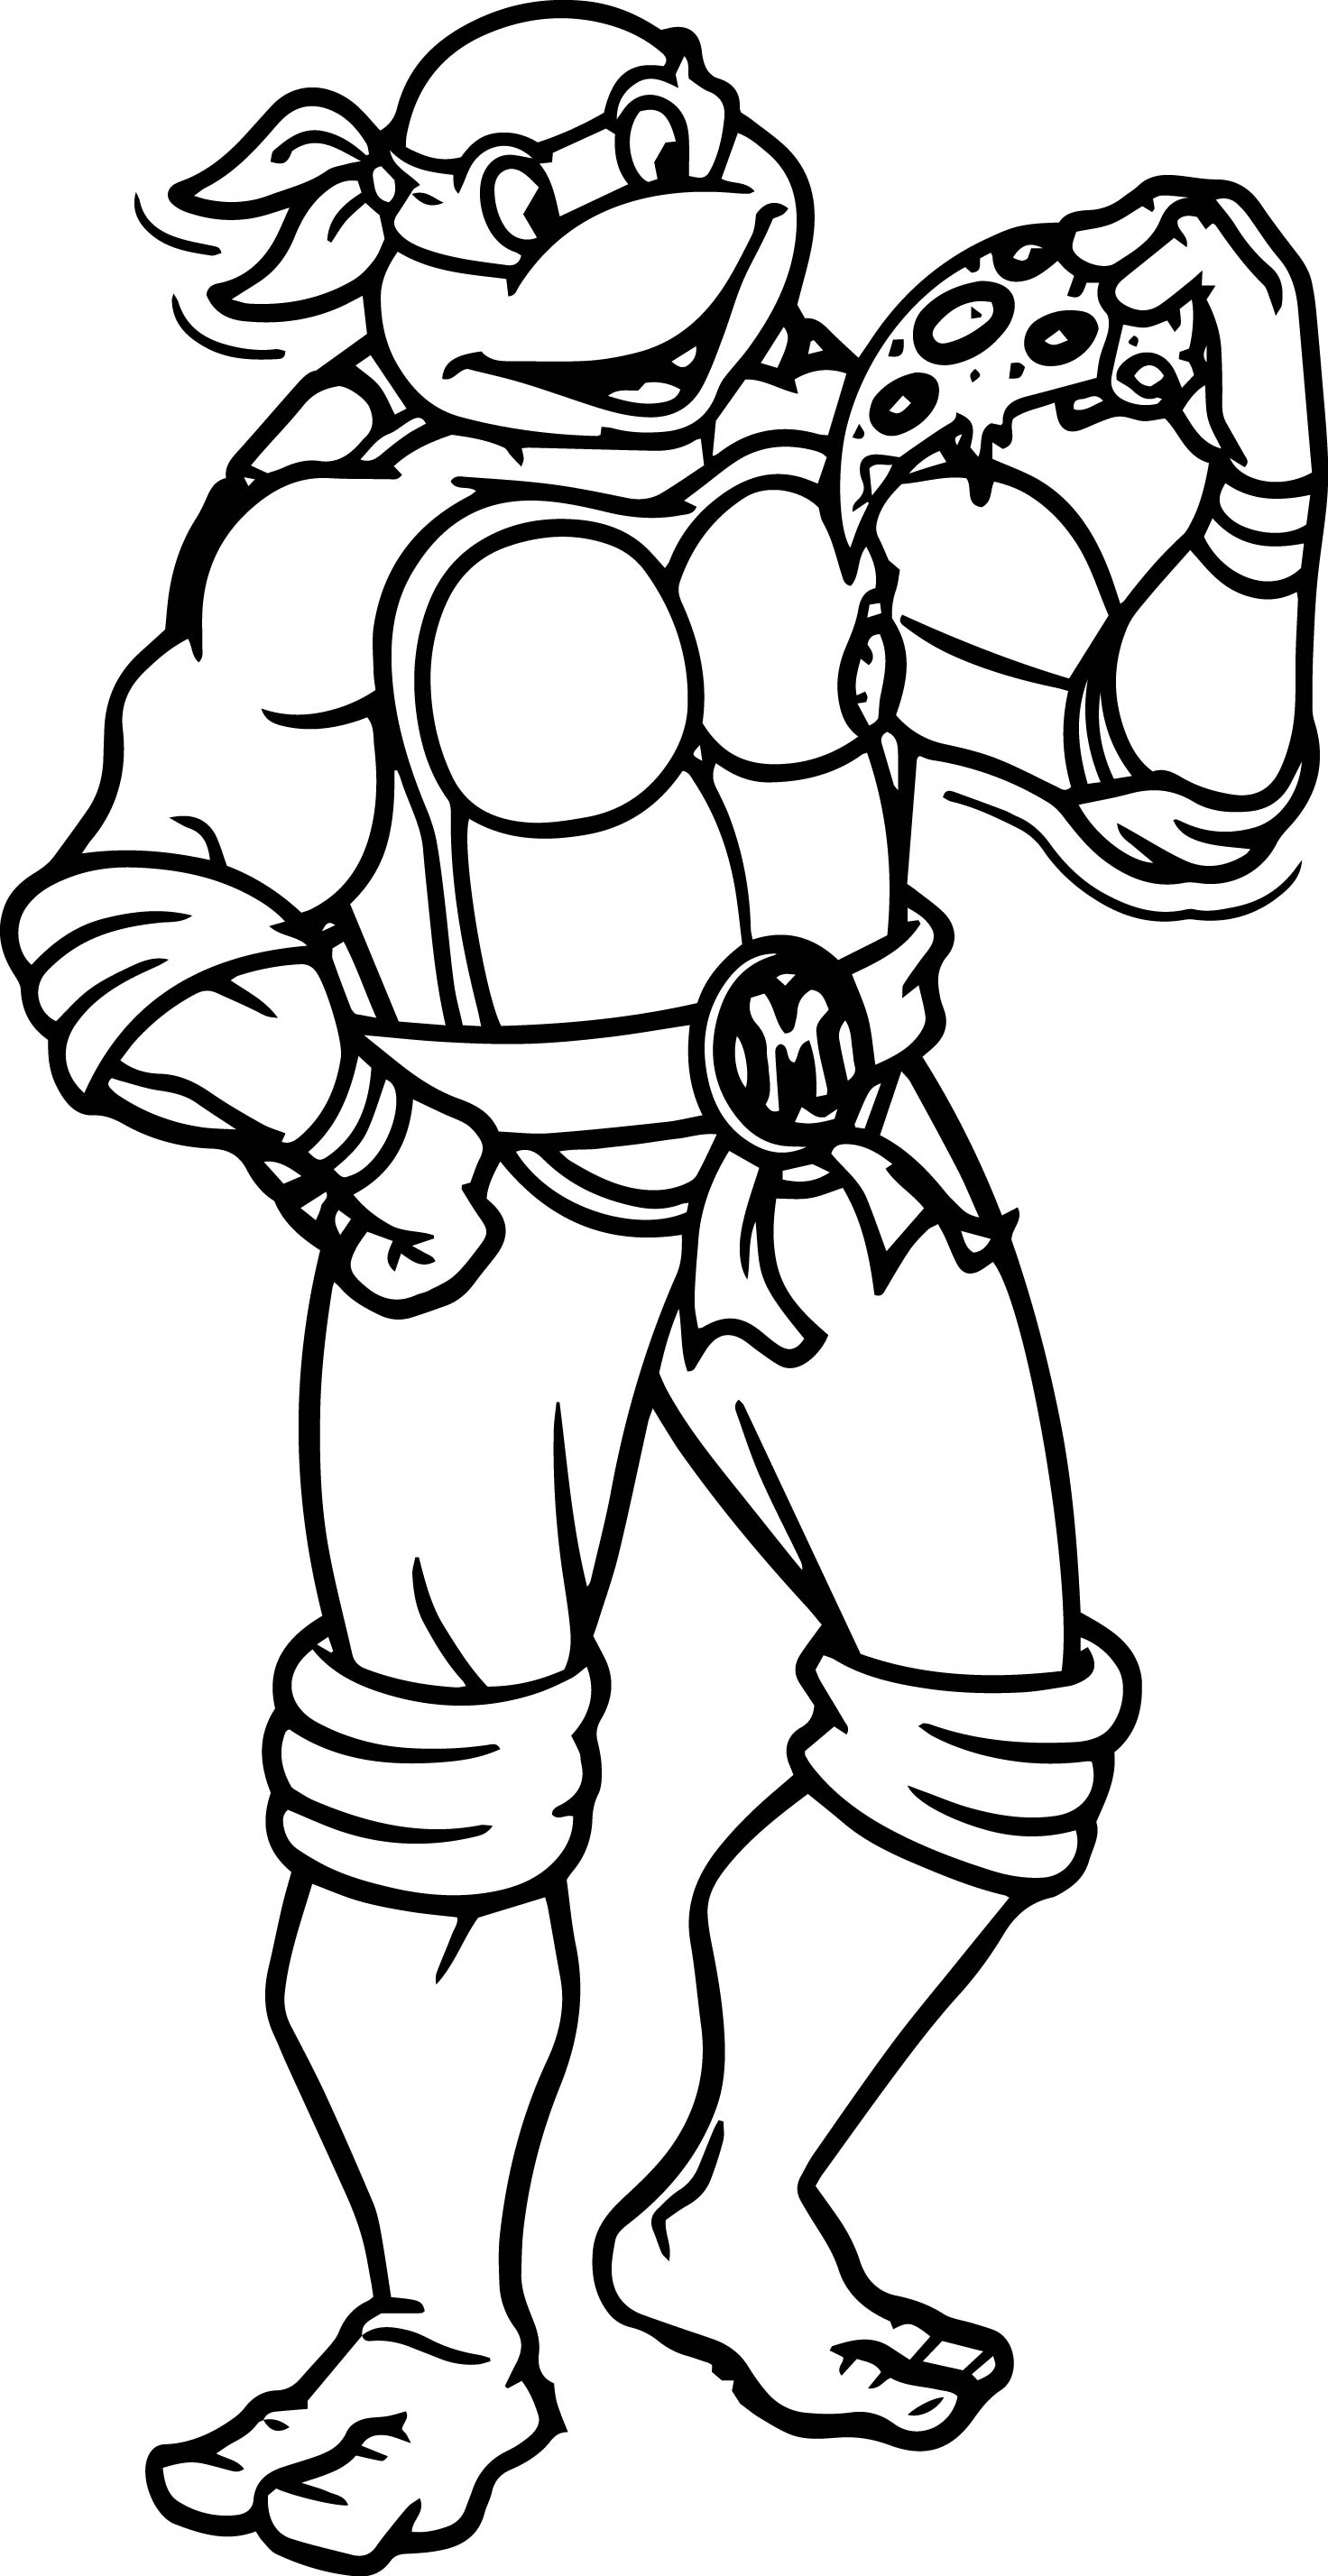 1472x2856 Ninja Turtle Cartoon Coloring Pages Wecoloringpage Coloring Pages